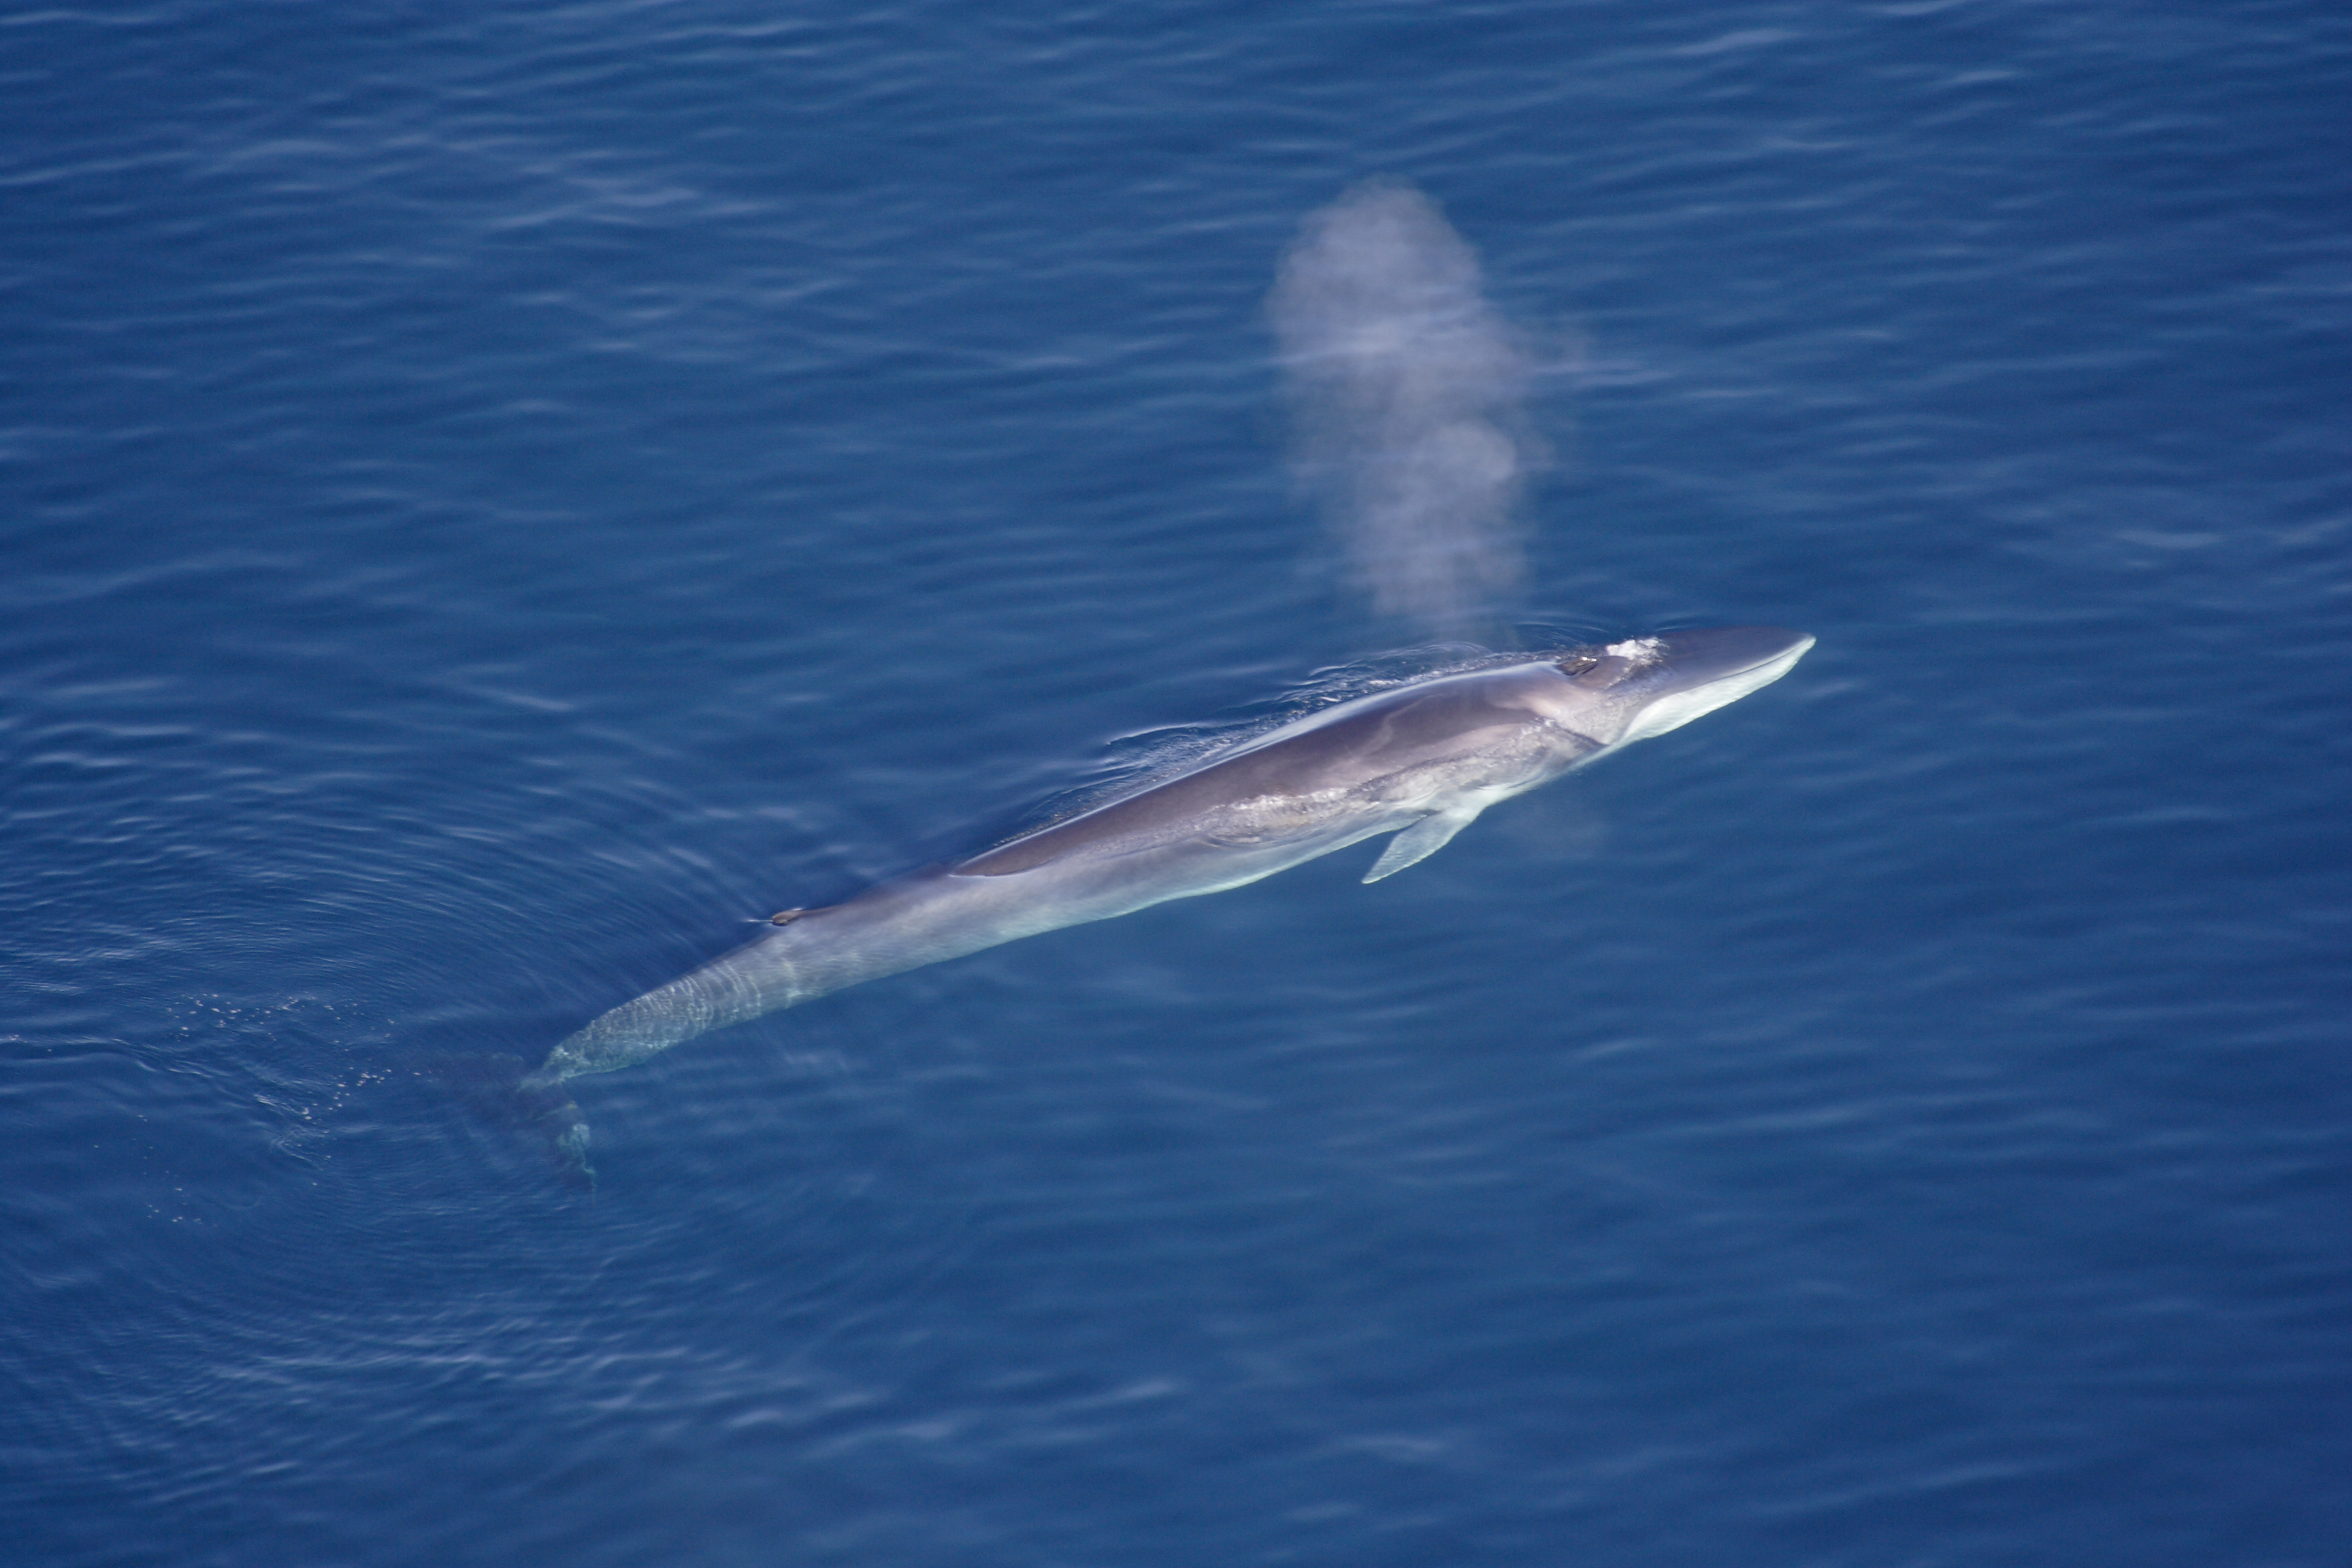 Fin Whale - Blow Hole Markings